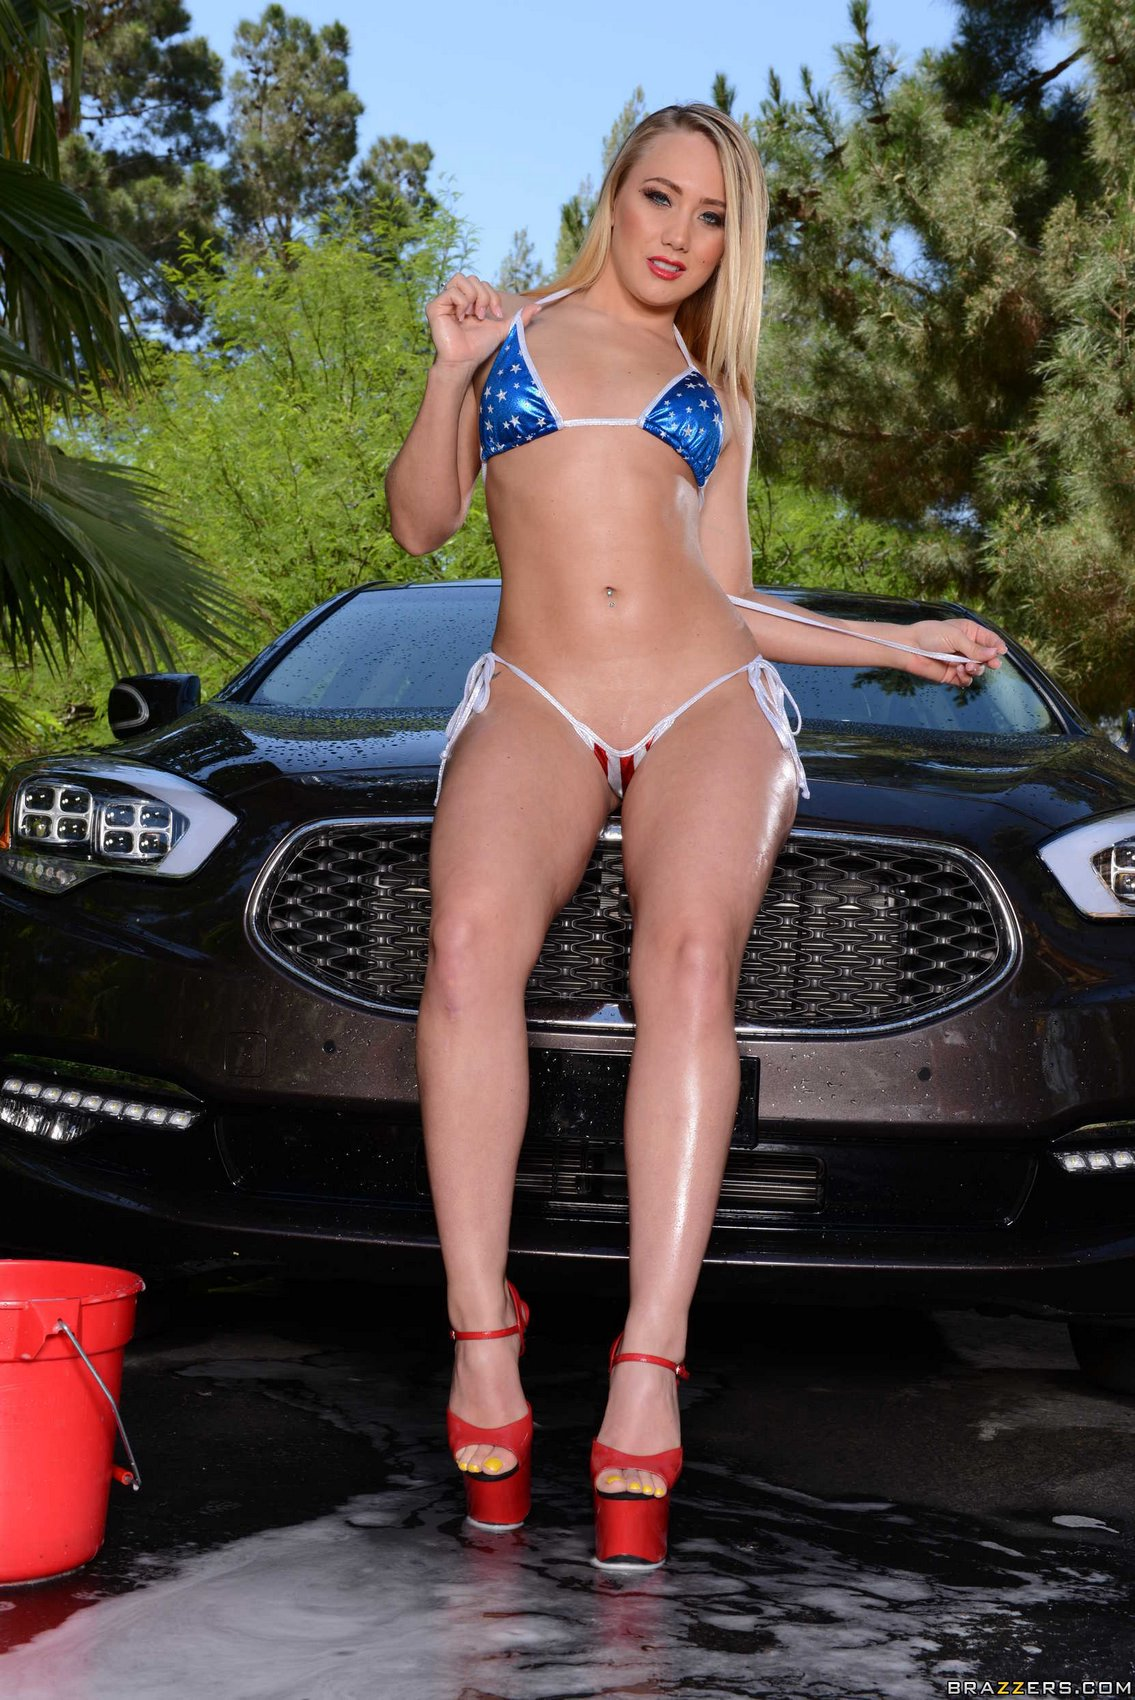 aj applegate in red high heels washes a car my pornstar book